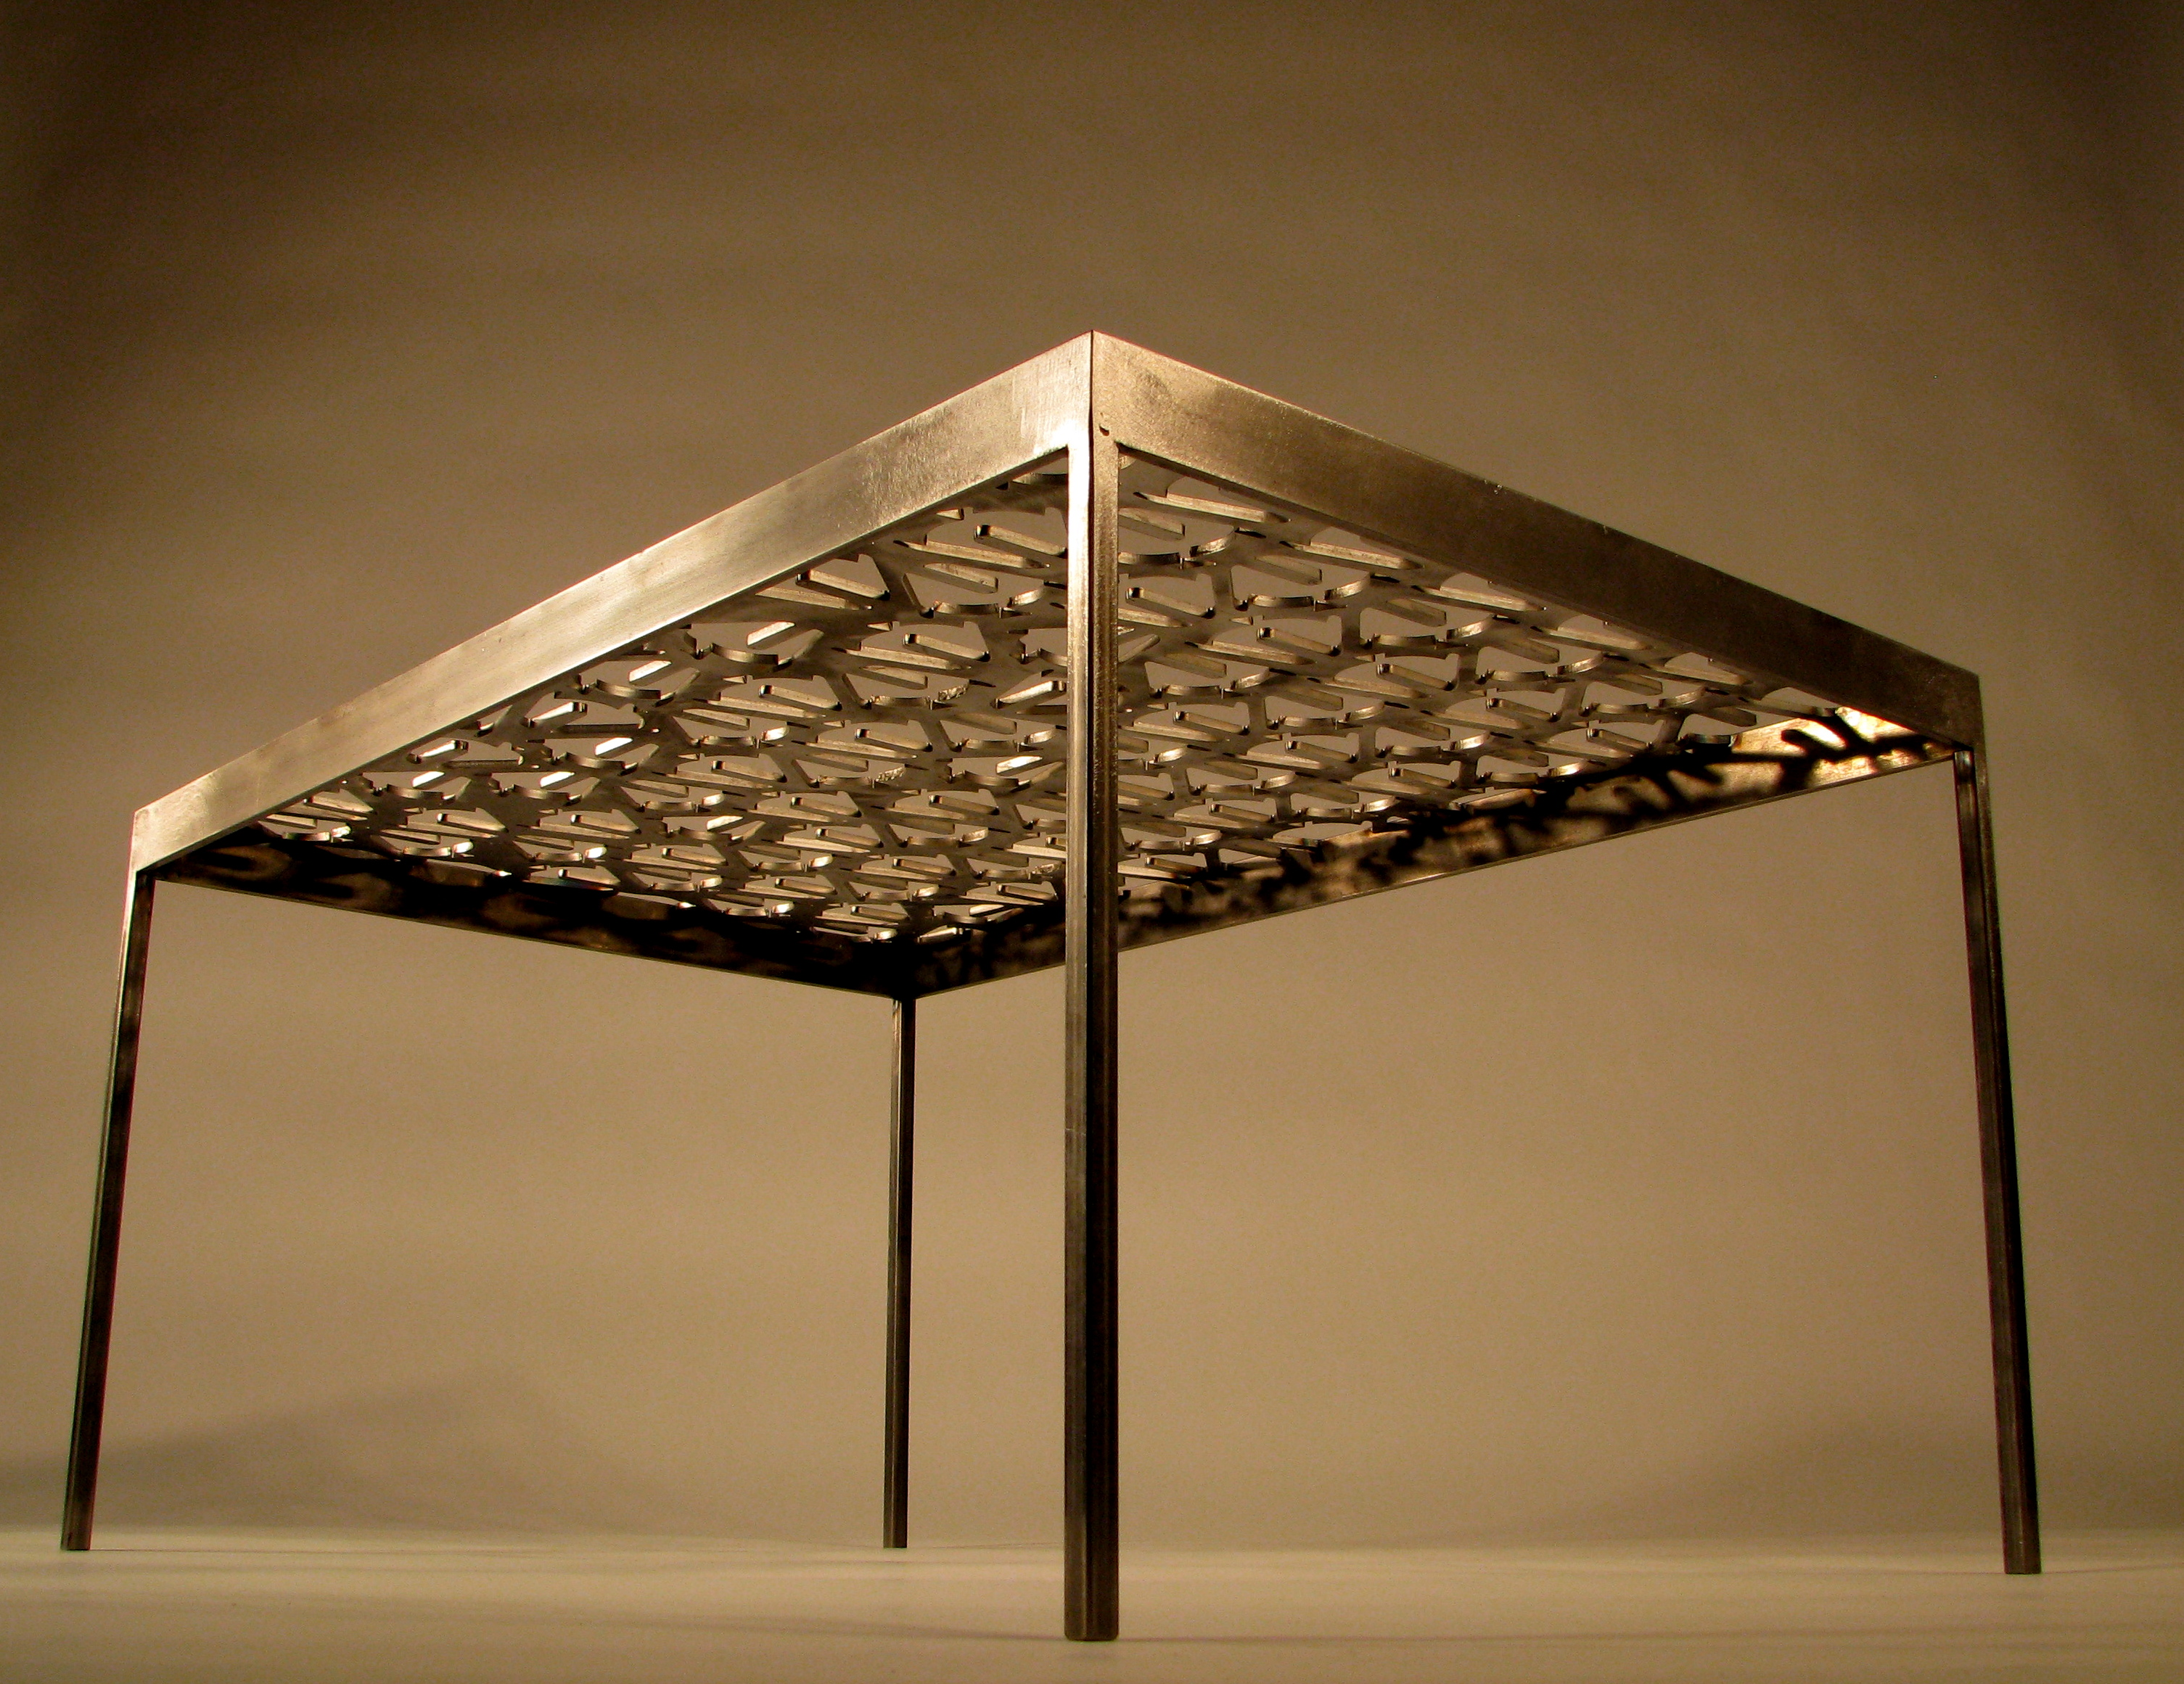 Coffee table archives tmrnyc total metal resource inc for Unusual decorative accessories